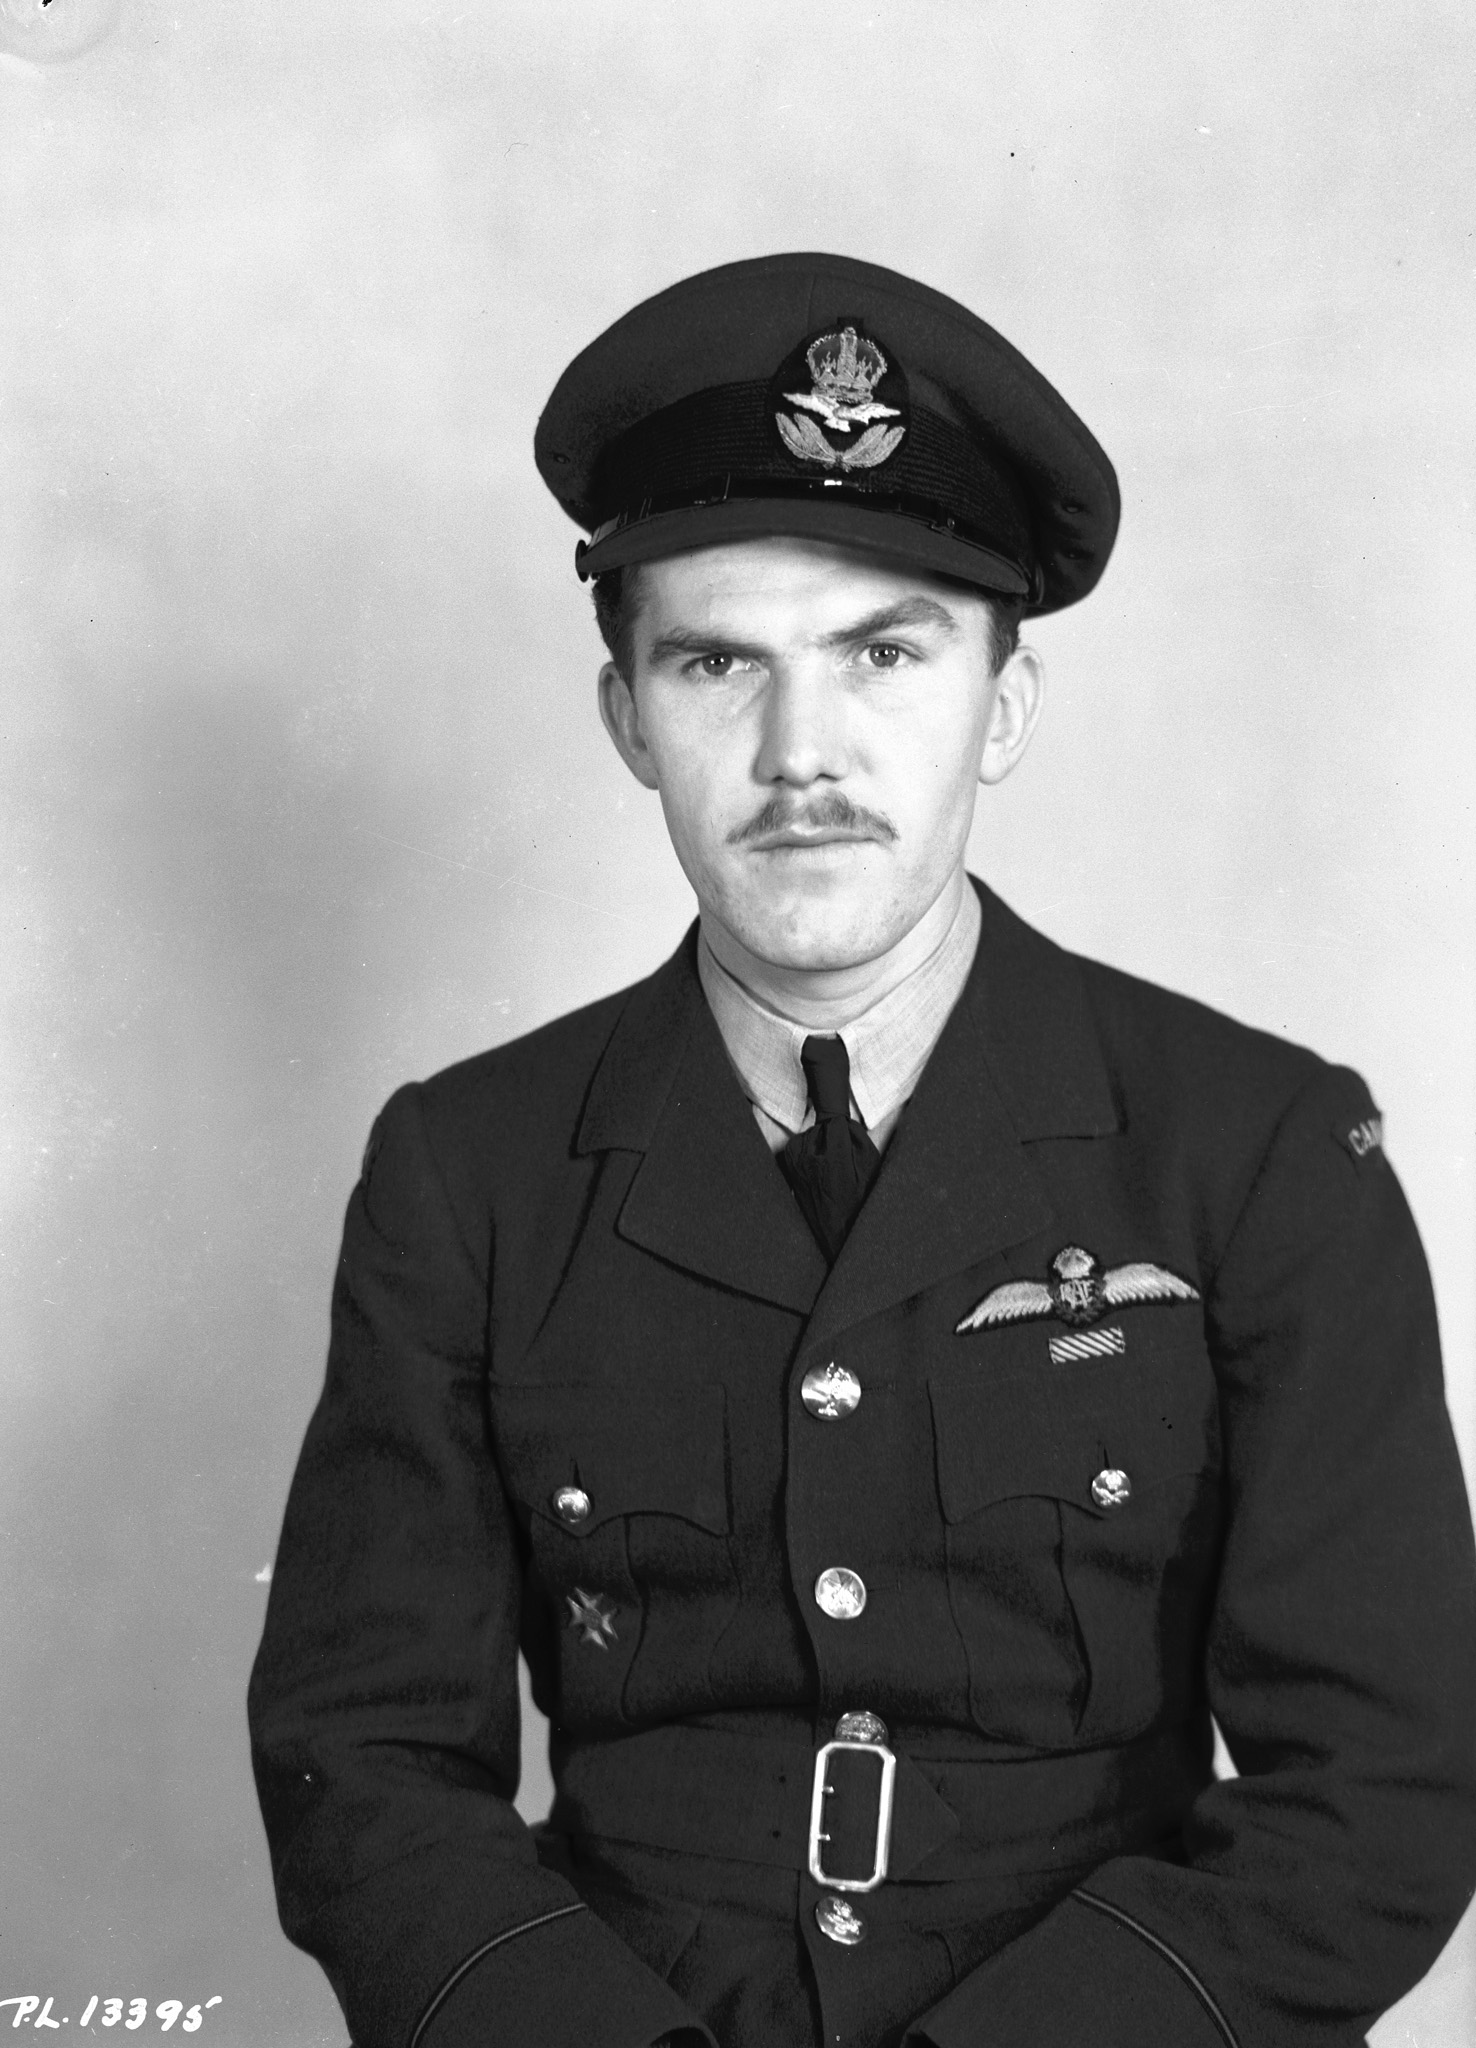 """Photo of James Ballantyne – PL-13395 - 6 March 1943 - Portrait: Pilot Officer J.H. Ballantyne, J/16085, Toronto, Ont. Pilot Officer James Hamilton Ballantyne, D.F.M. of Toronto who won the Distinguished Flying Medal while he was a flight sergeant serving with the Royal Air Force in the defense of Malta. Son of Mr. and Mrs. J.H.H. Ballantyne, 43 Hendrich avenue, Pilot Officer Ballantyne has destroyed at least five enemy aircraft and damaged others and his citation notes that he """"is a most courageous and brave fighter pilot, who has played a worthy part in the defense of Malta."""""""